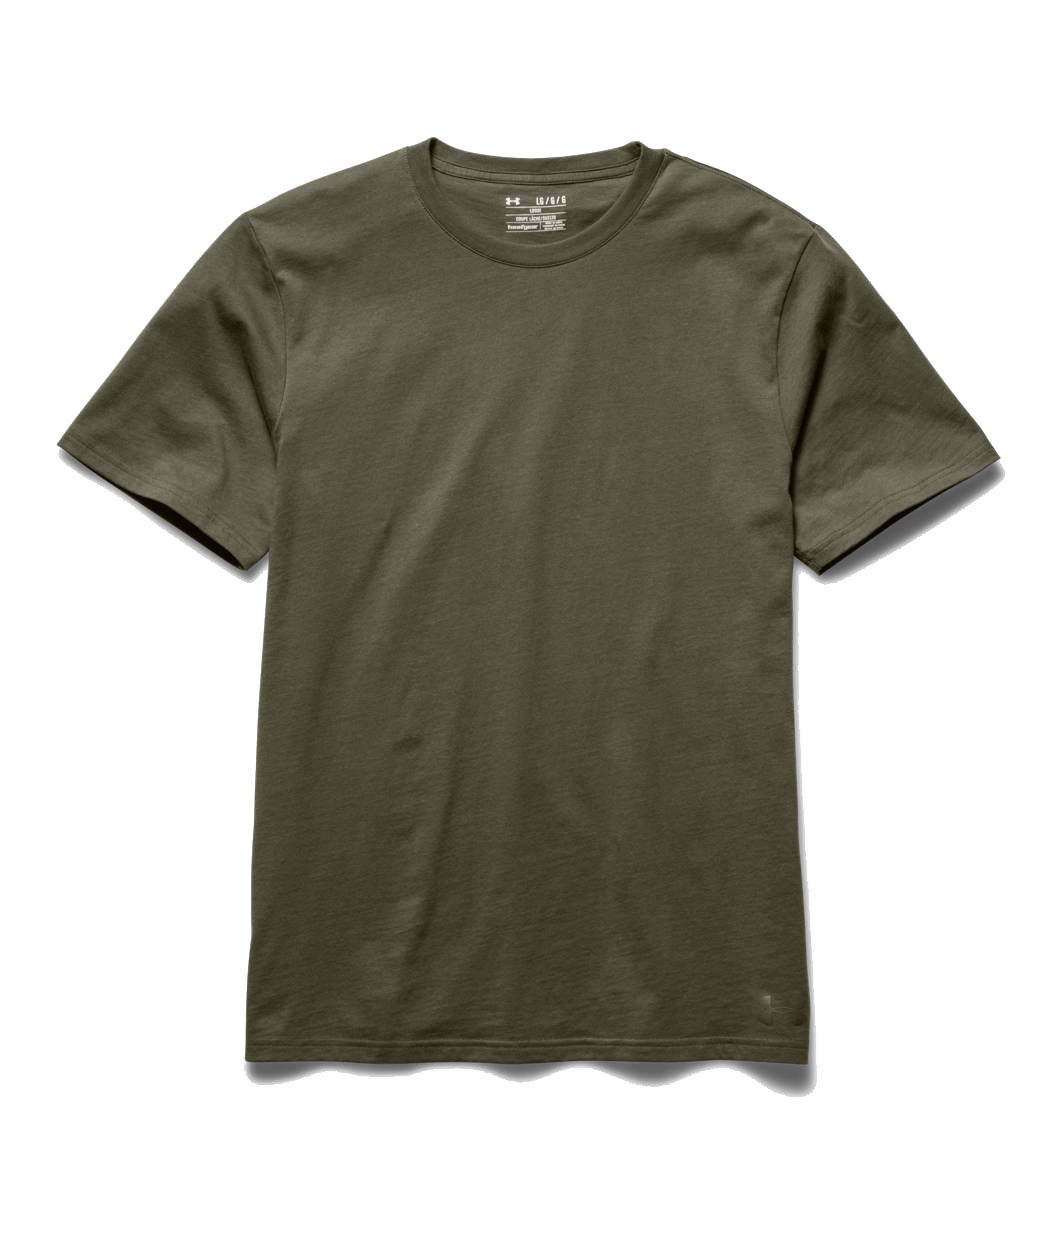 Under armour men 39 s tactical charged cotton t shirt ebay for Under armour charged shirt